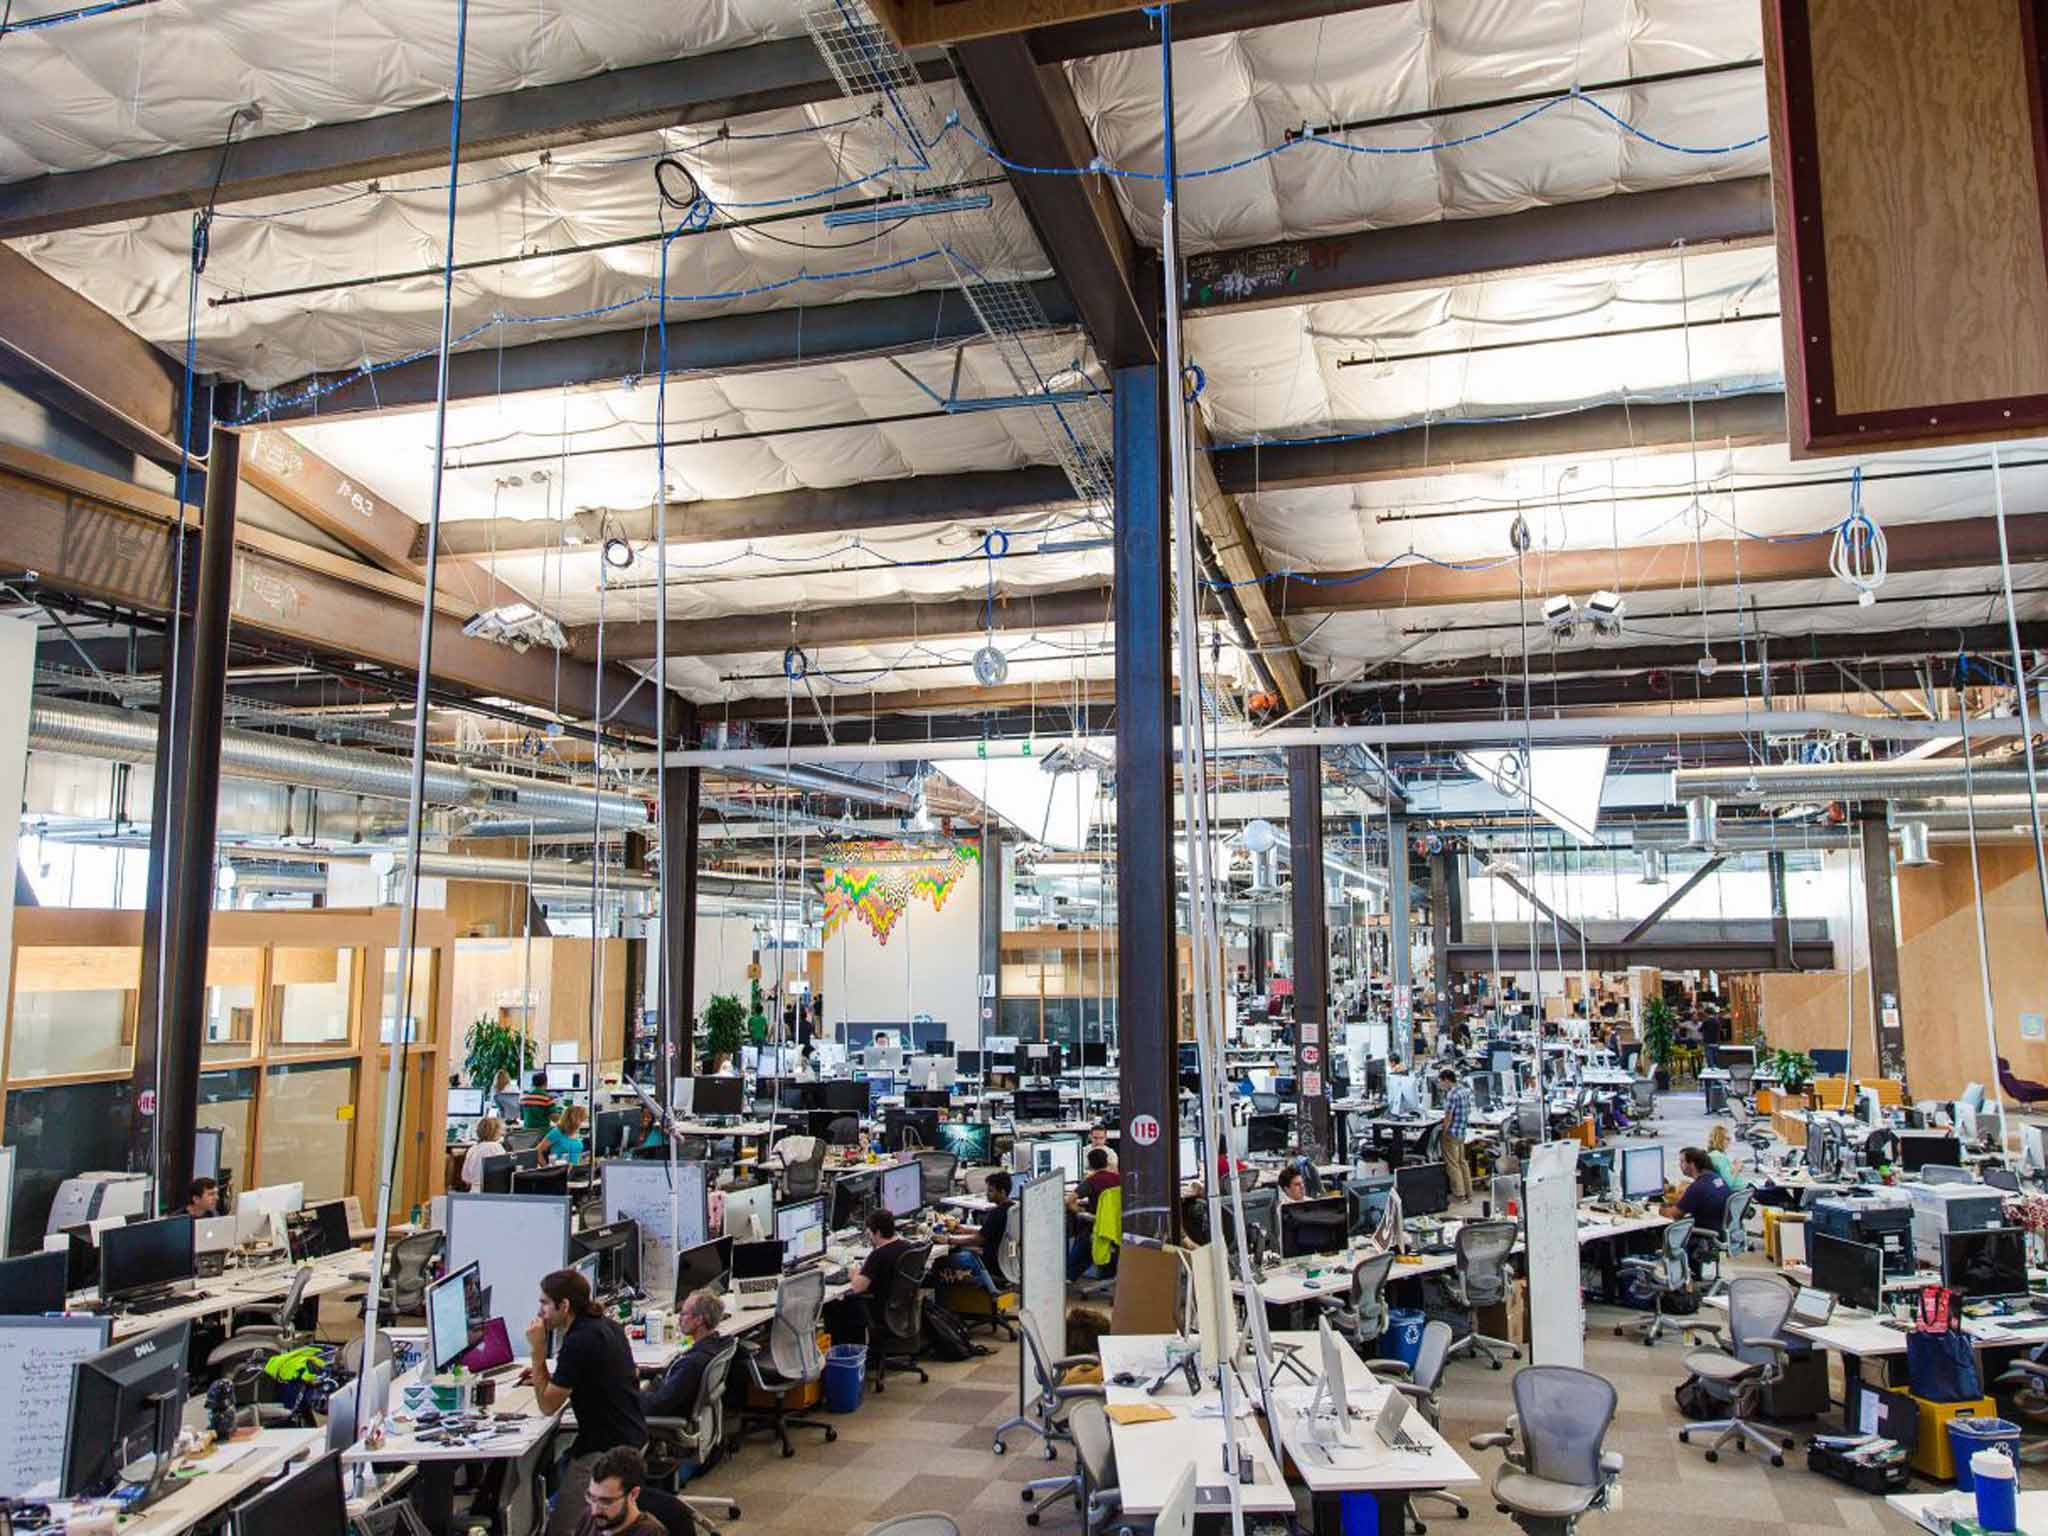 Facebooks New Headquarters Where Open Plan Is King And Frictionless Working The Aim